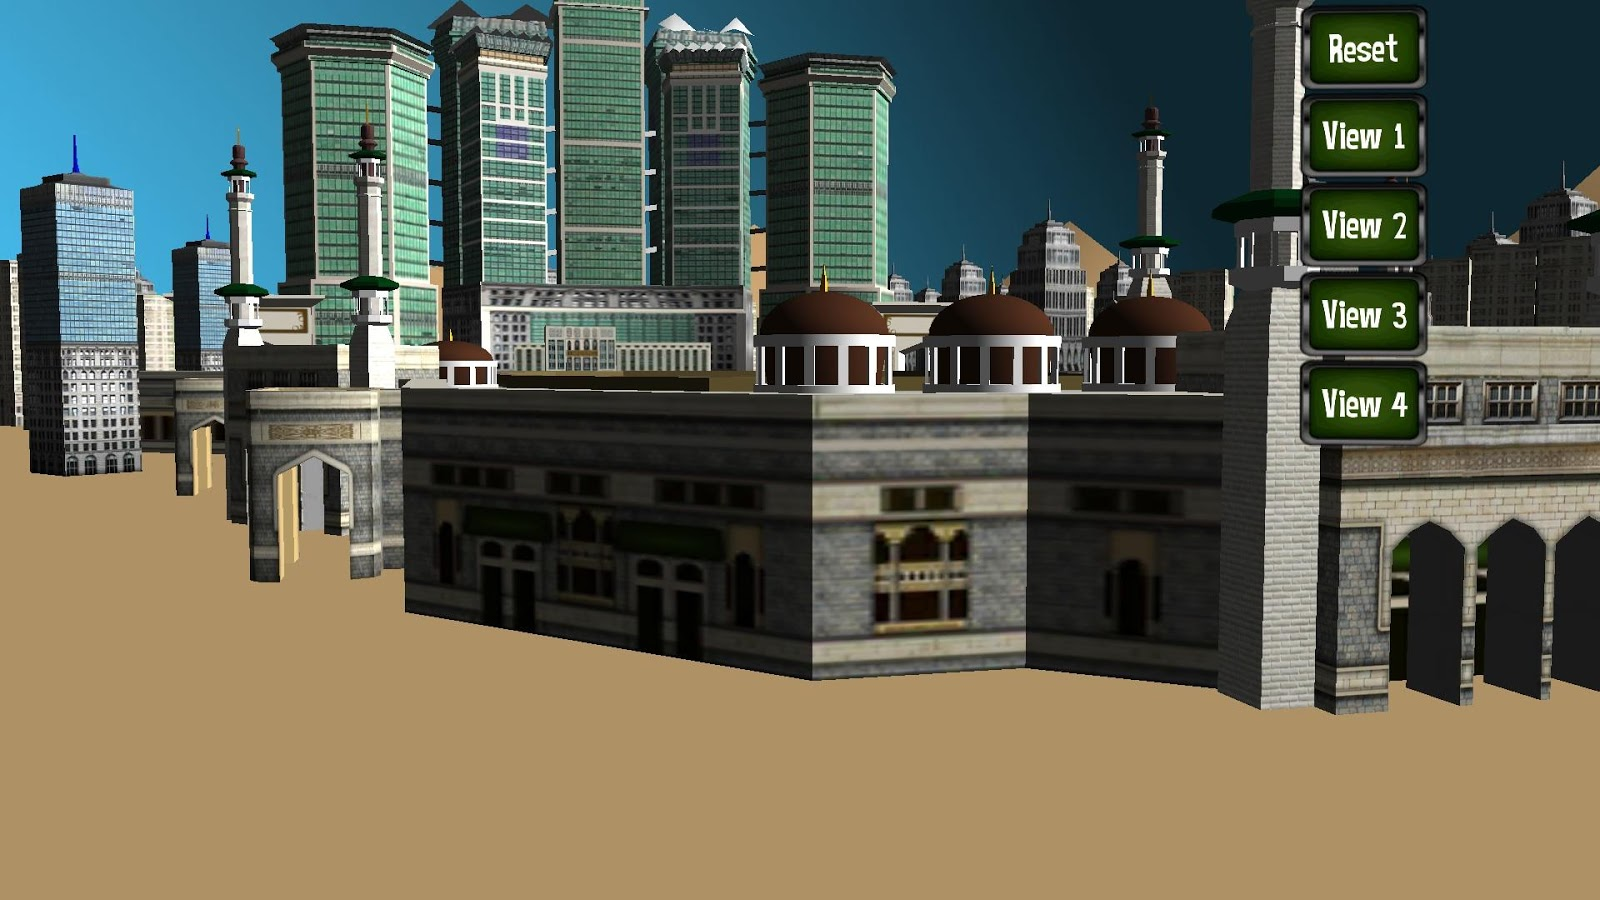 Mecca 3D (Makkah Virtual Tour) - Content - ClassConnect